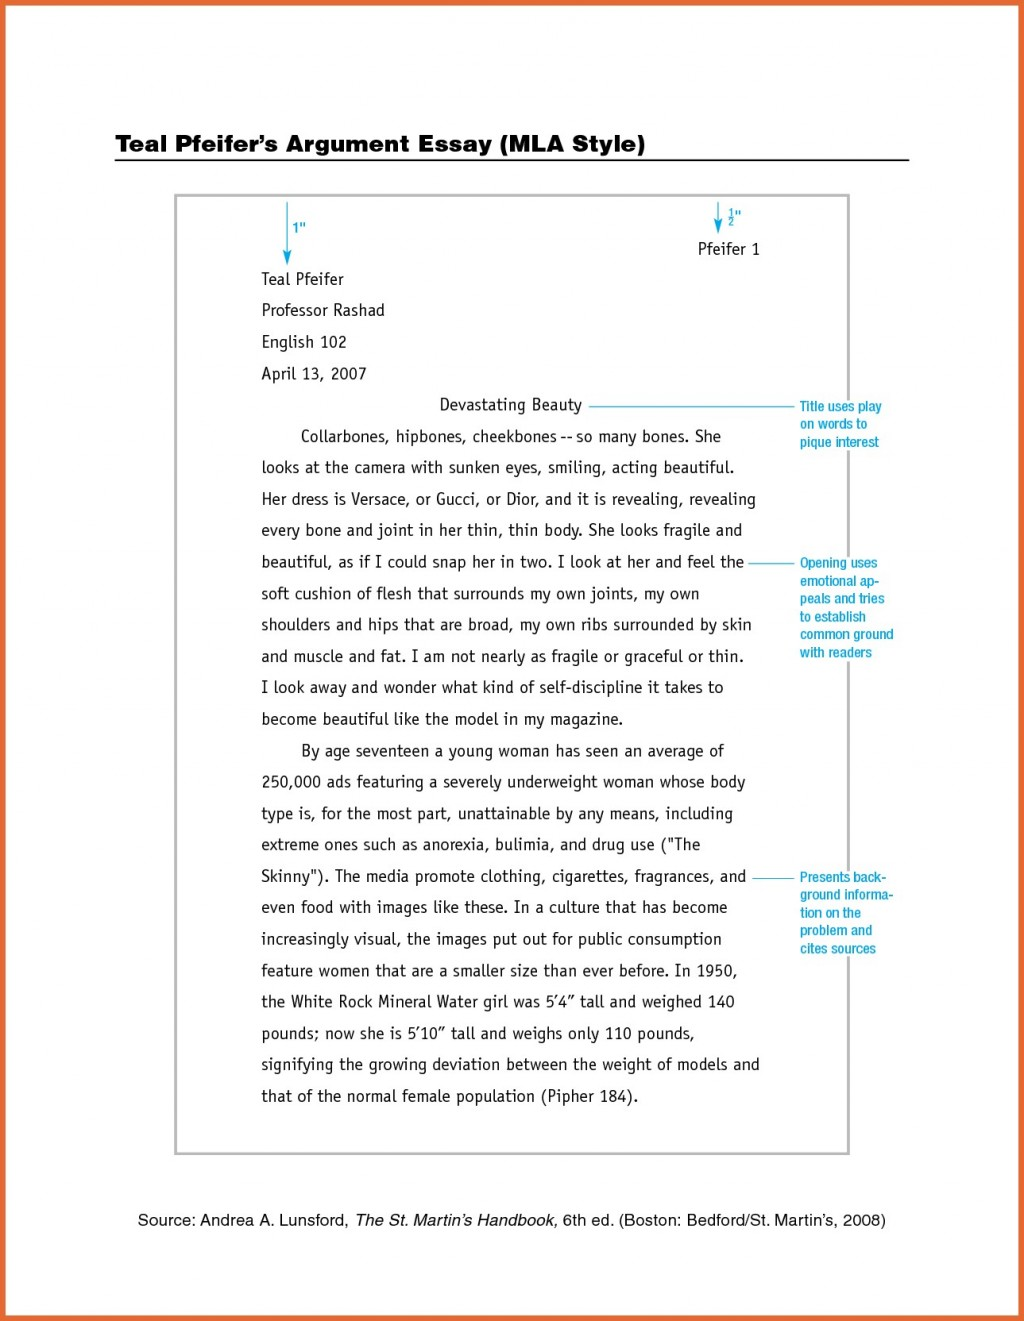 005 Essay Example What Is Mla Format For Essays Title Page Fresh Of An Goal How To Your Paper In Goodwi My Style With Word Narrative Unique Proper 8 Large